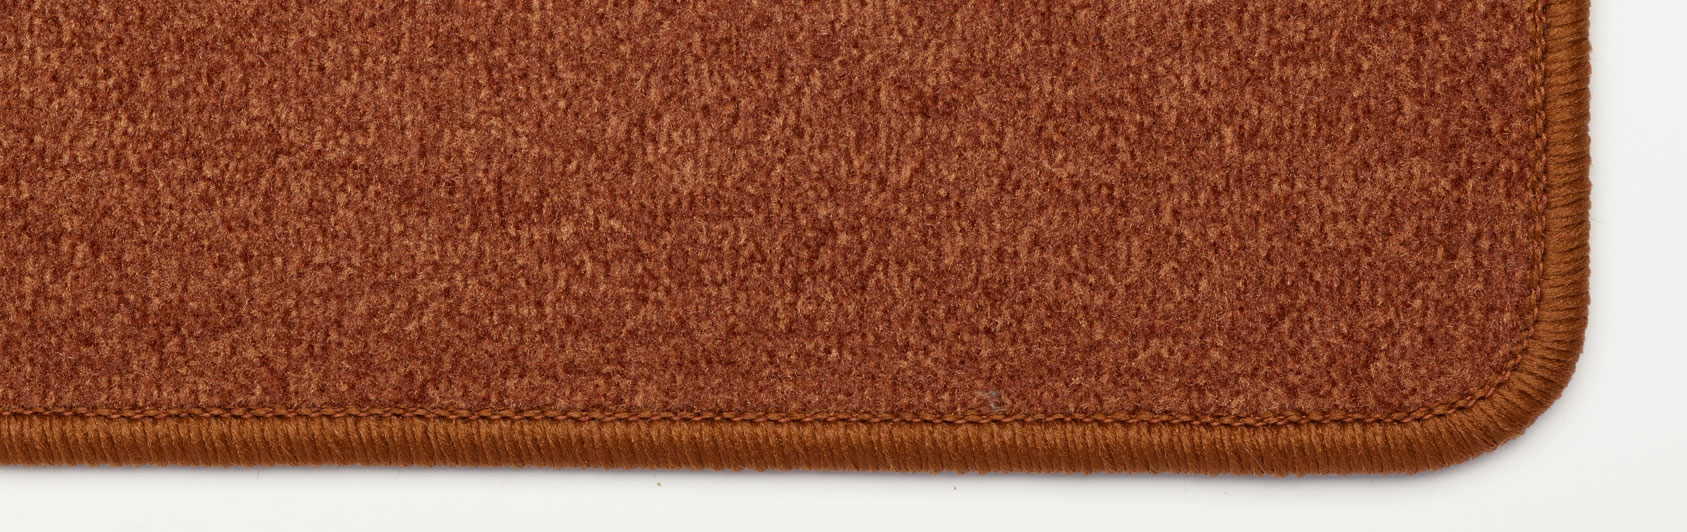 church carpet velvet color code 1900 color brass